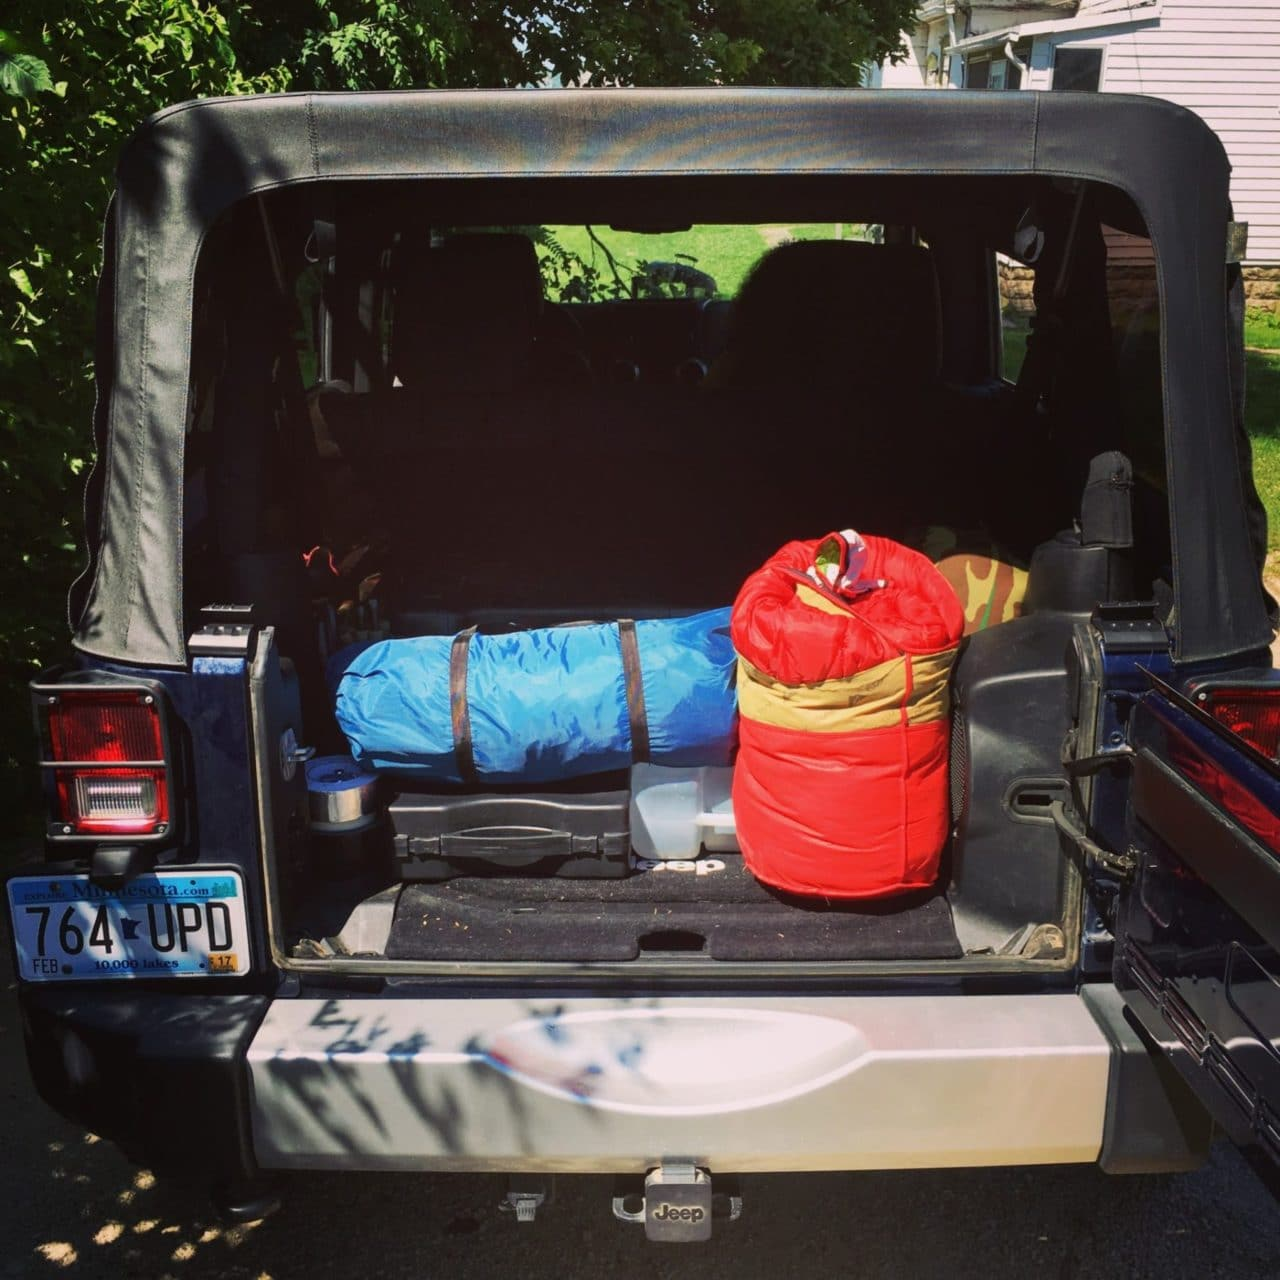 Jeep packed up with gear